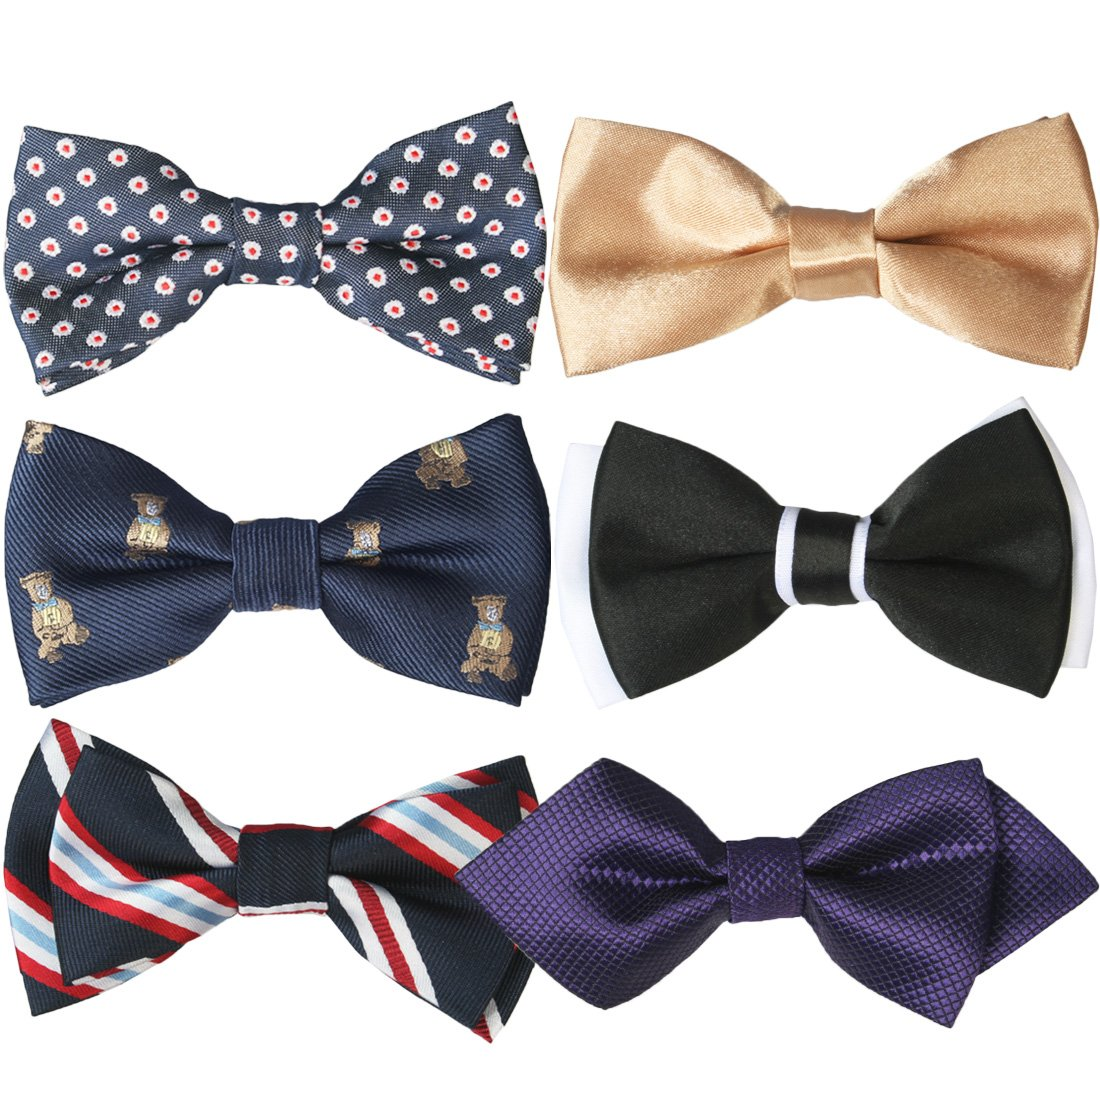 kilofly Pre-tied Adjustable Boys Baby Neck Bow Ties Mixed Value Pack, Set of 6 BBA513set6